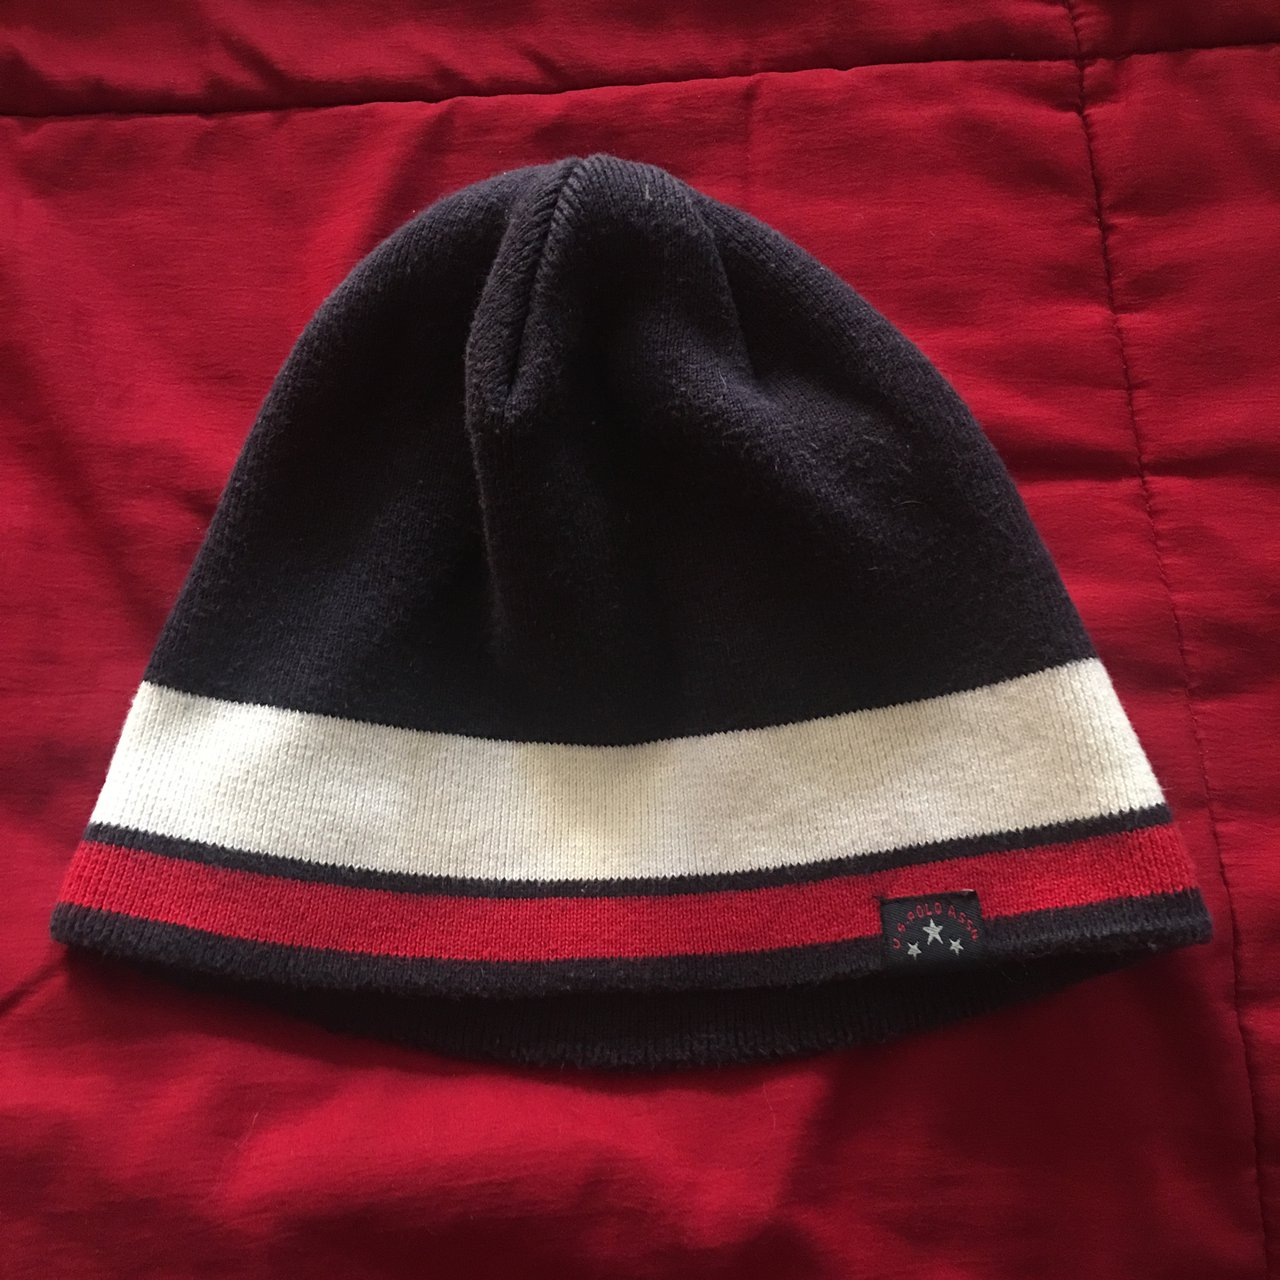 c38644c0731 Navy blue and red beanie!! 🔥 u.s. polo assn reminds me of - Depop